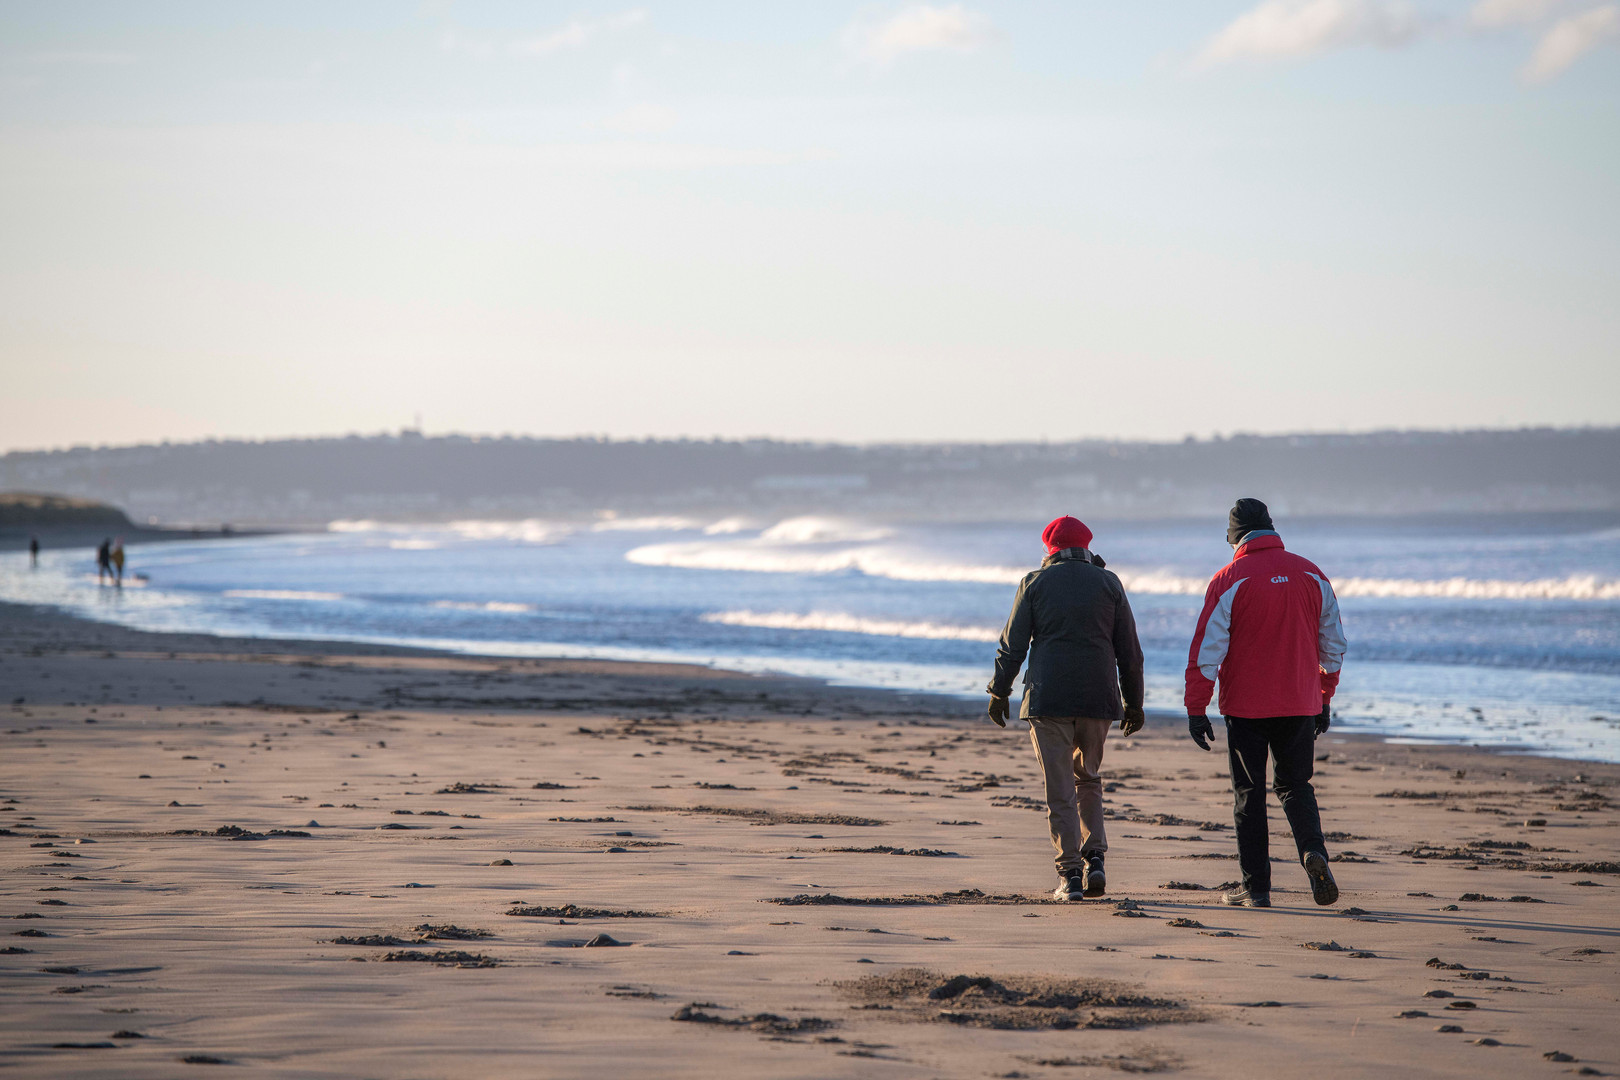 Waking the beach in the winter